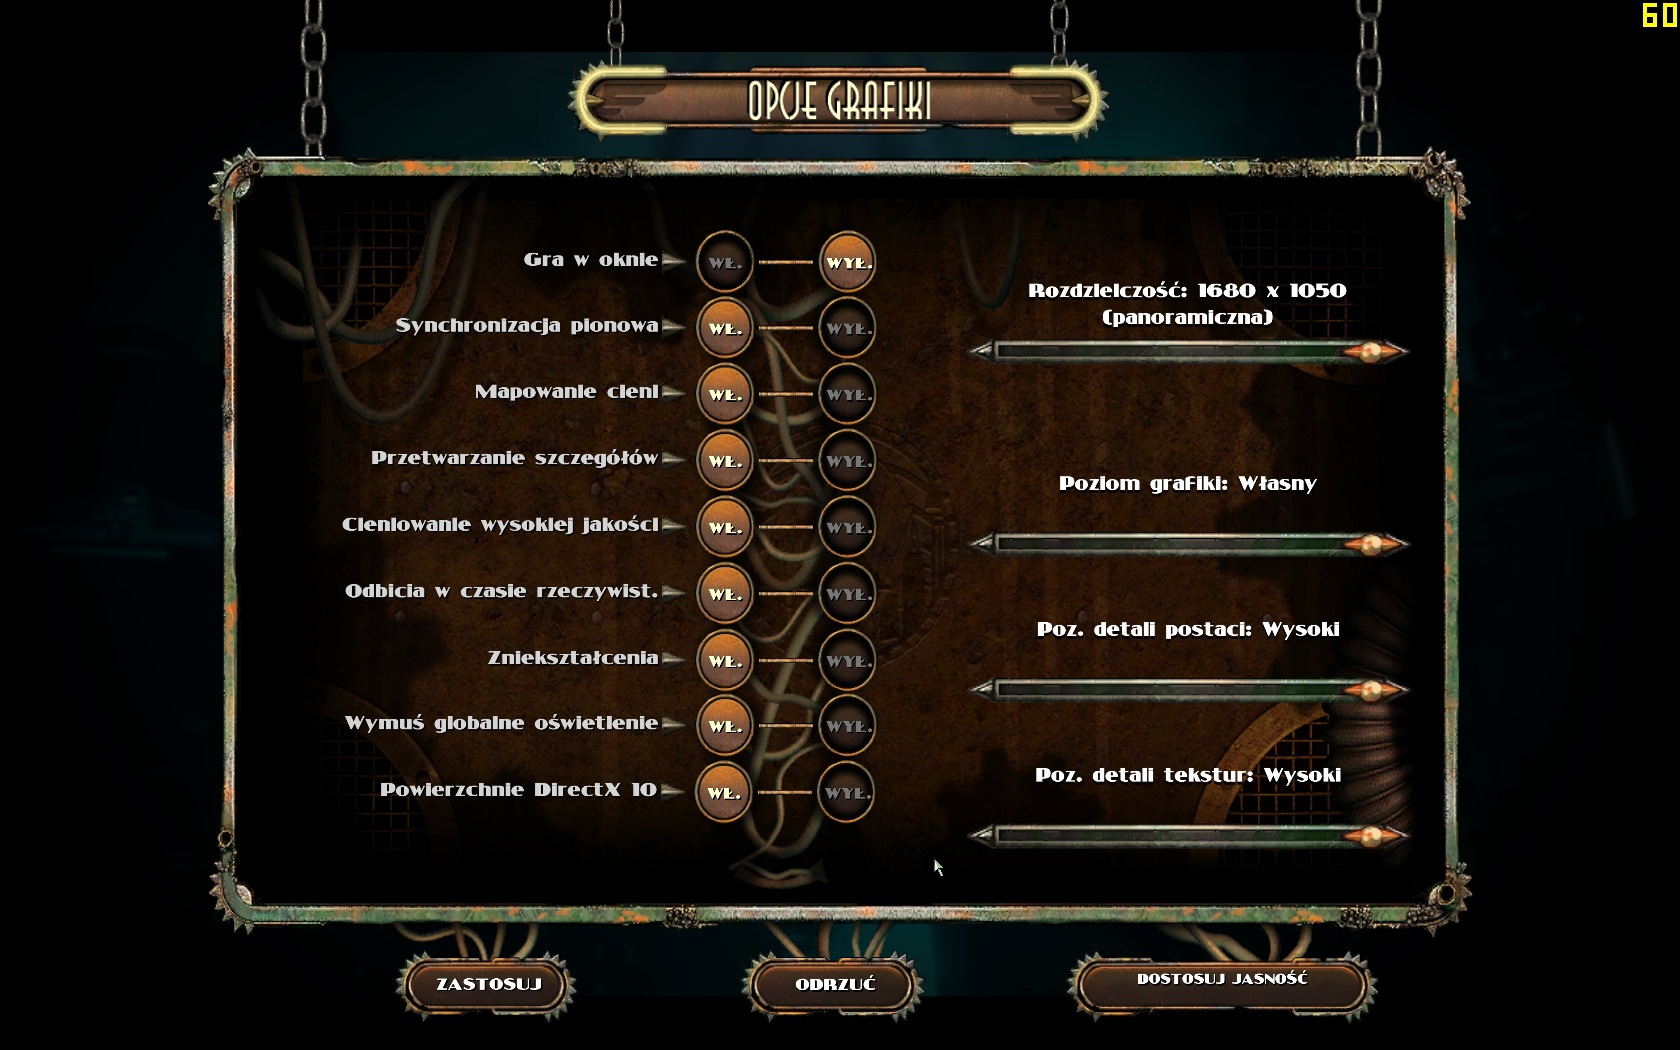 Bioshock 2 patch 1 5 notes on dating